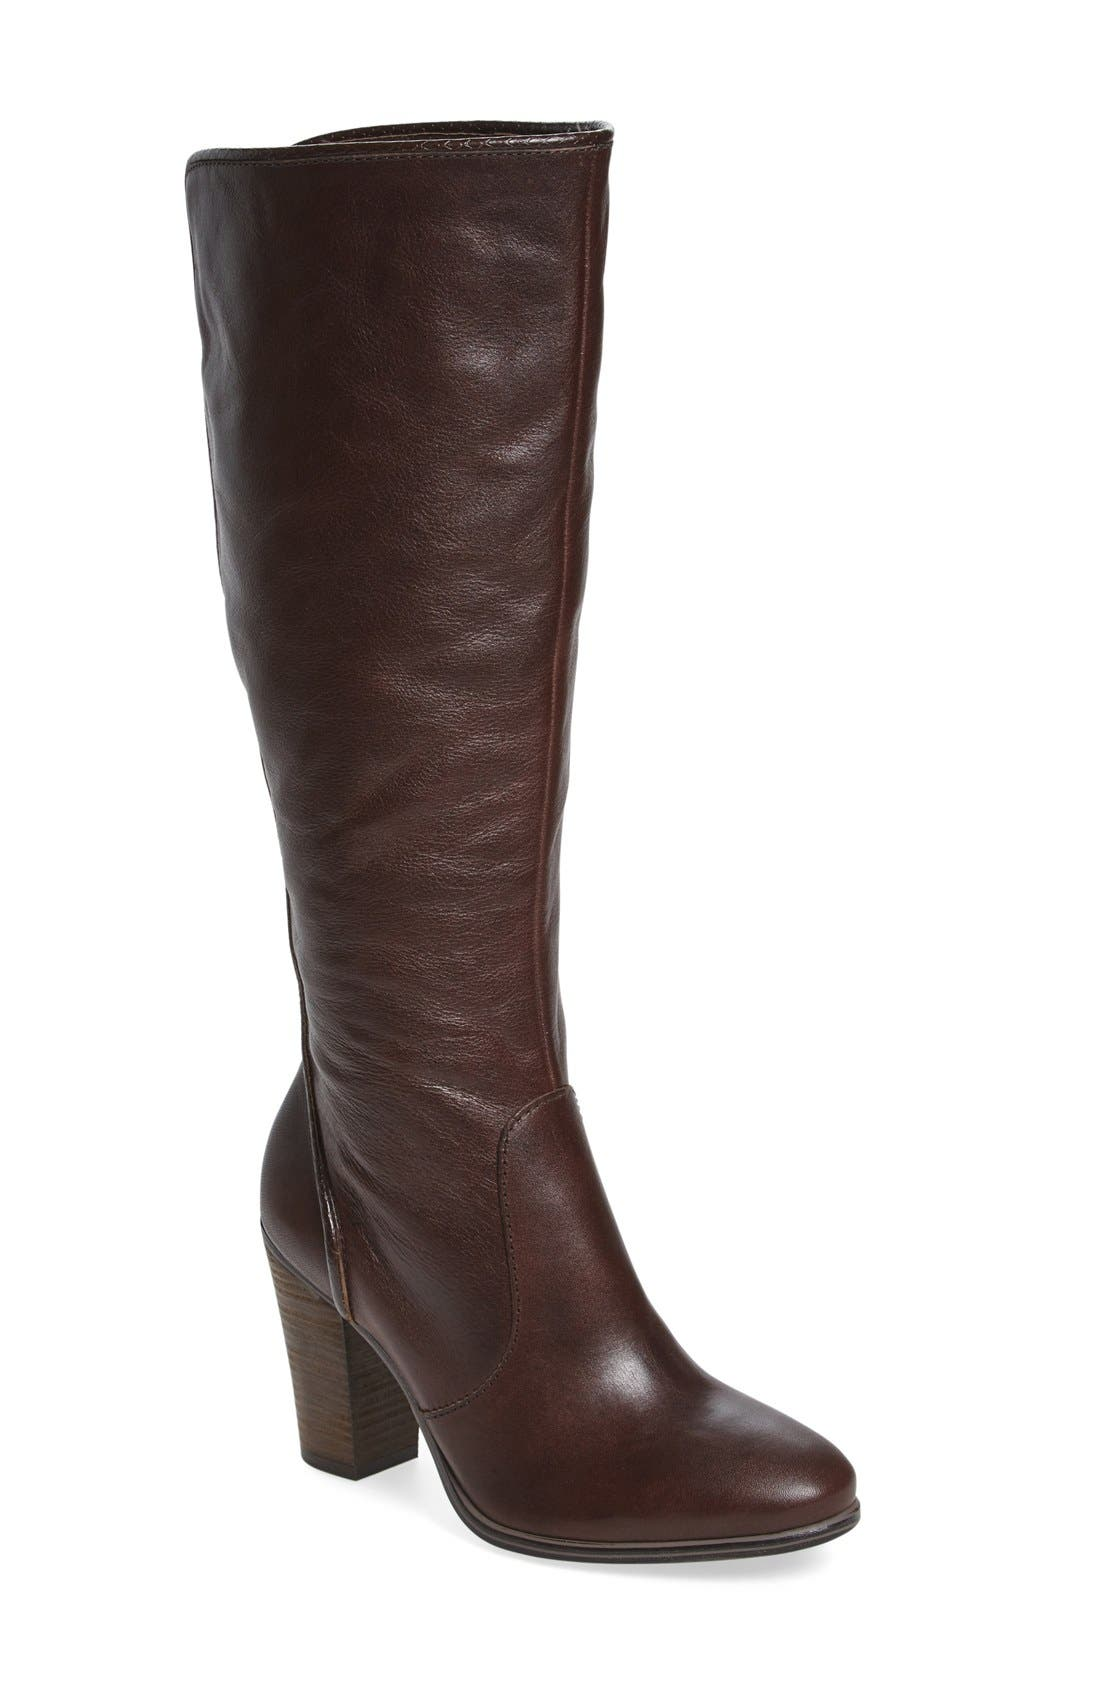 Alternate Image 1 Selected - Vince Camuto Framina Knee High Boot (Women)